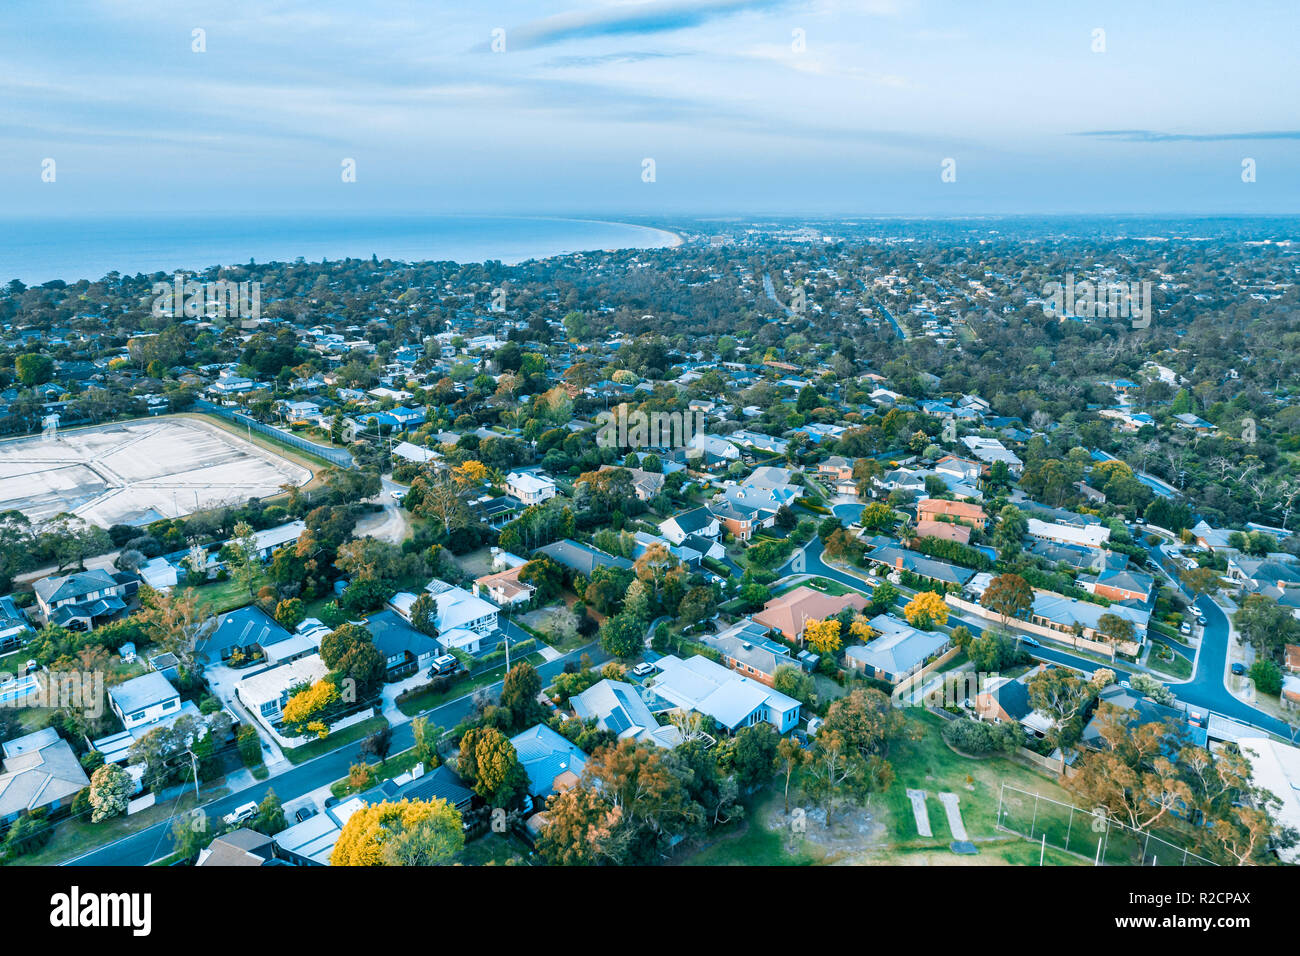 Aerial view of residential area on Mornington Peninsula, Victoria, Australia - Stock Image